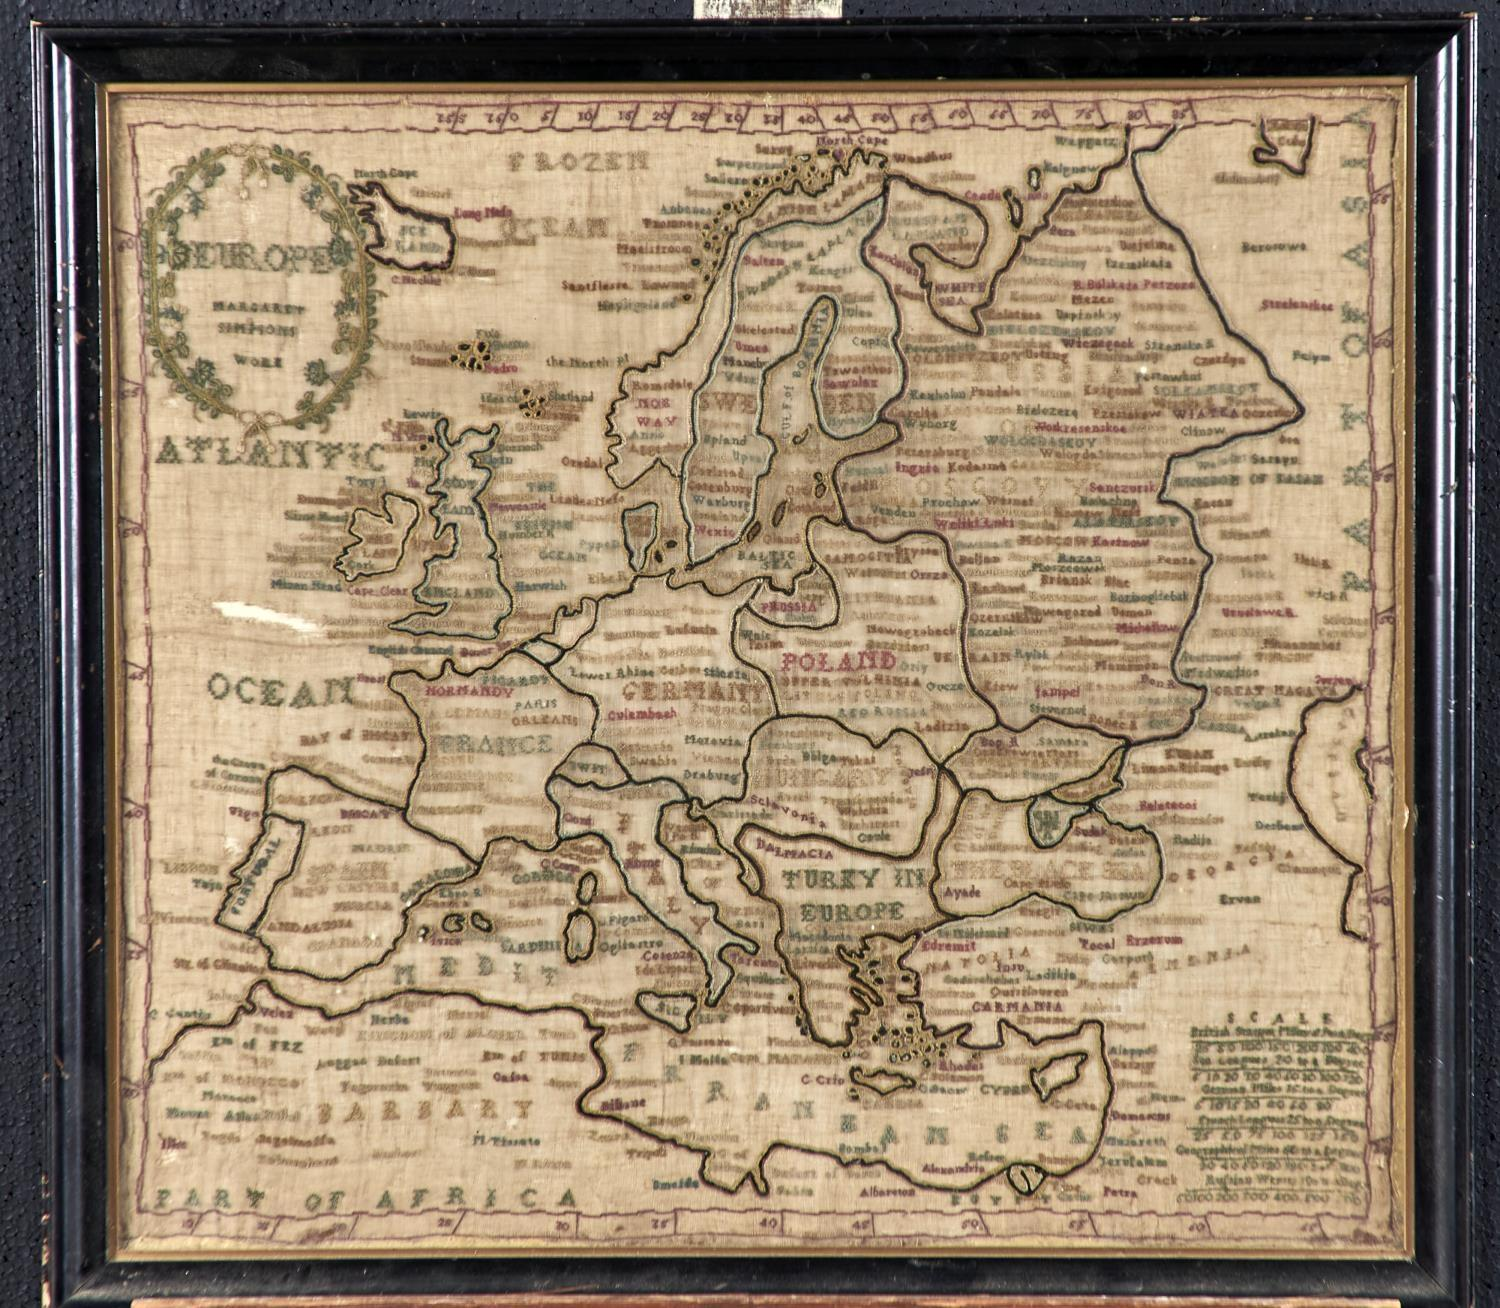 TWO ENGLISH LINEN MAP SAMPLERS OF ENDLAND AND WALES AND EUROPE, NELLIE SIMPSON'S WORK AND MARGARET - Image 3 of 4